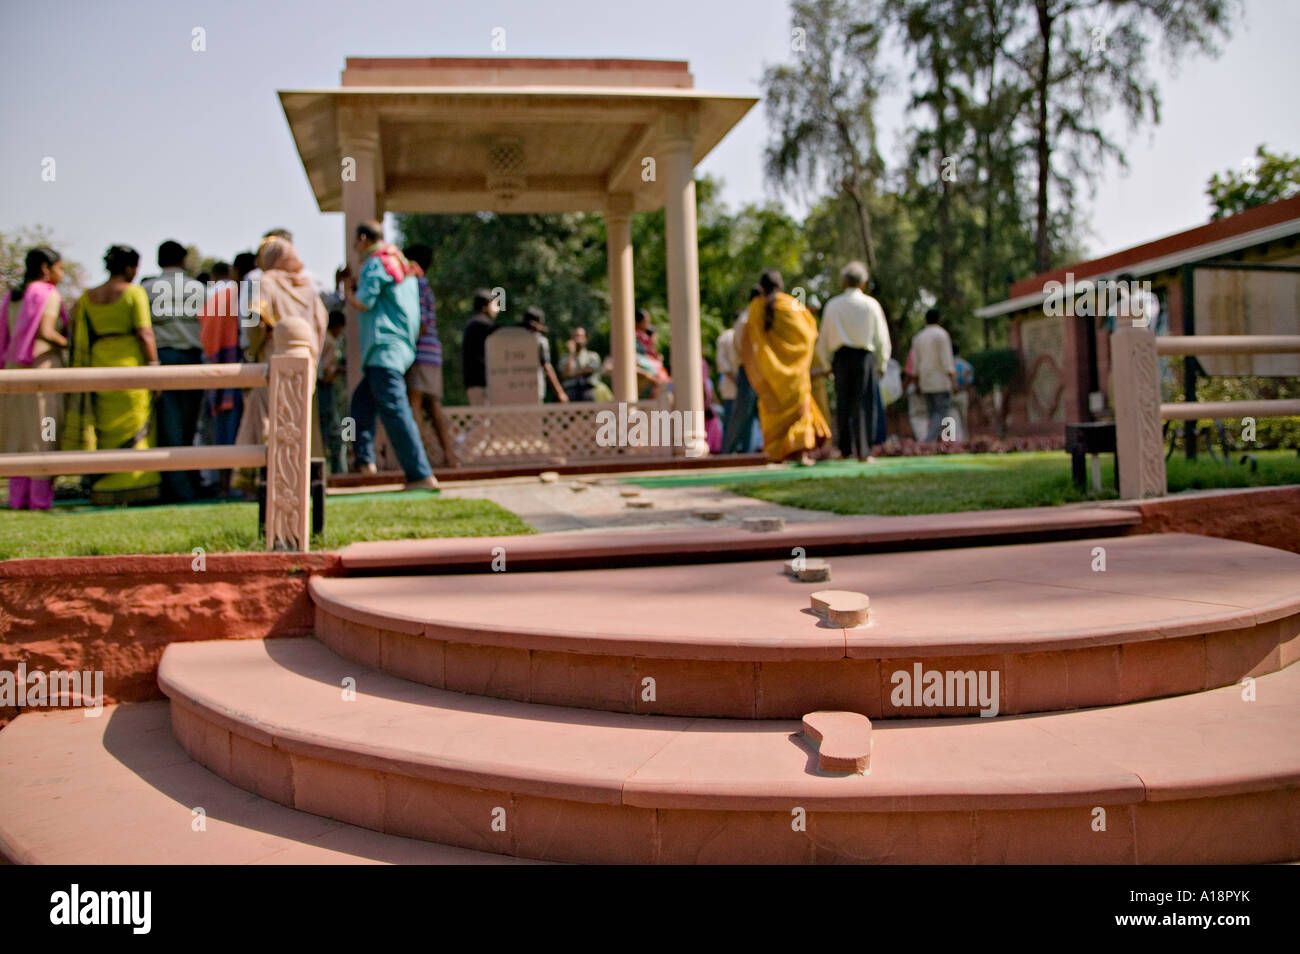 Memorial to Mahatma Gandhi's last steps on the way to his prayer ground at Gandhi Smriti, New Dehli, India - Stock Image